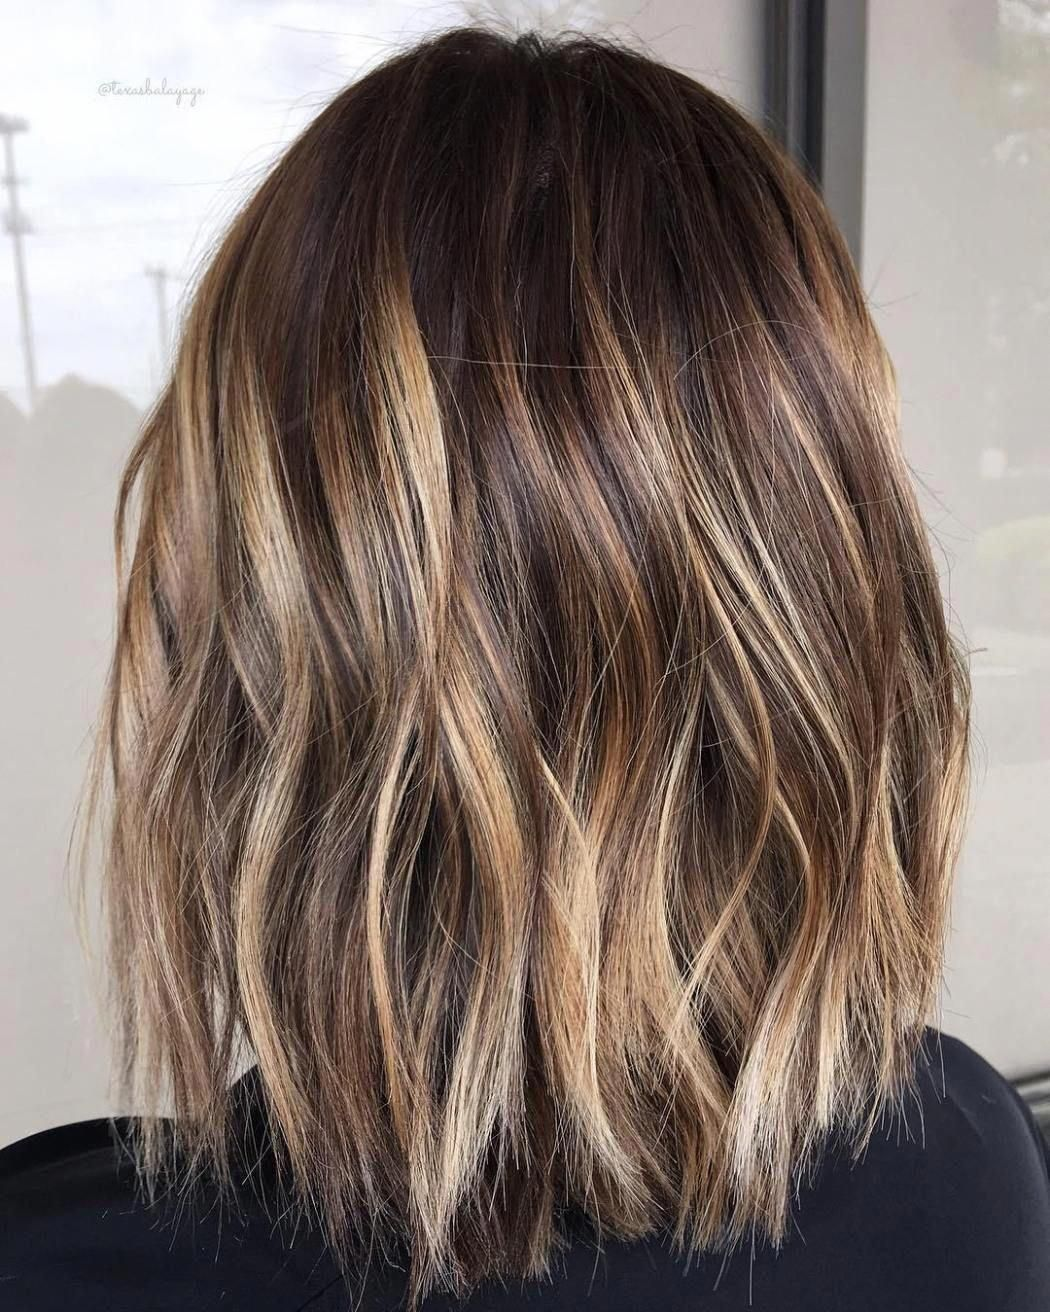 10 Fabulous Brown Hair with Blonde Highlights Looks to Love